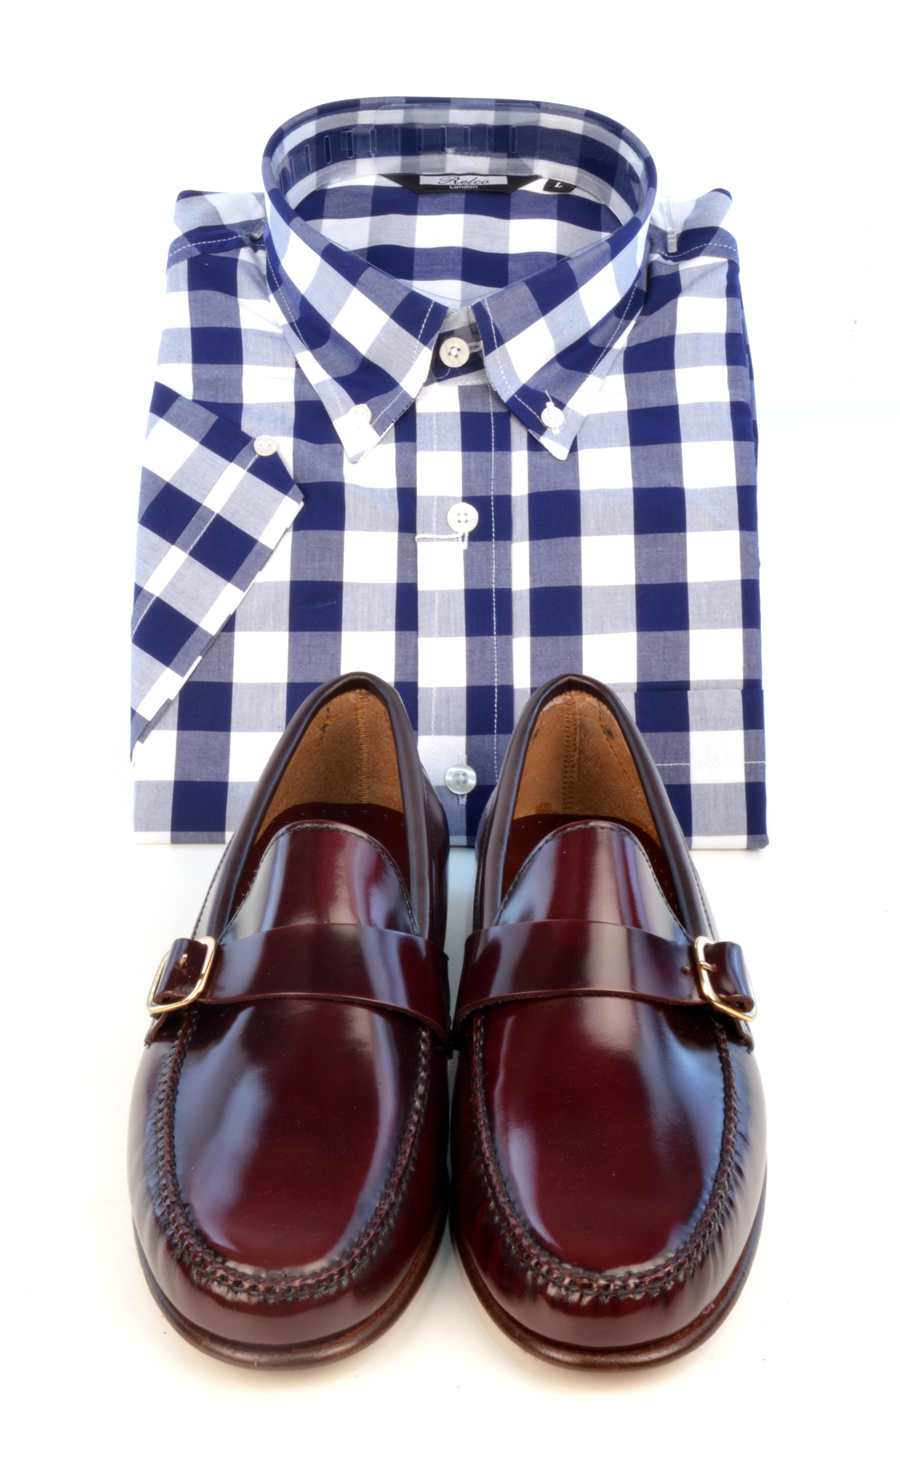 modshoes-oxblood-loafers-with-check-shirt